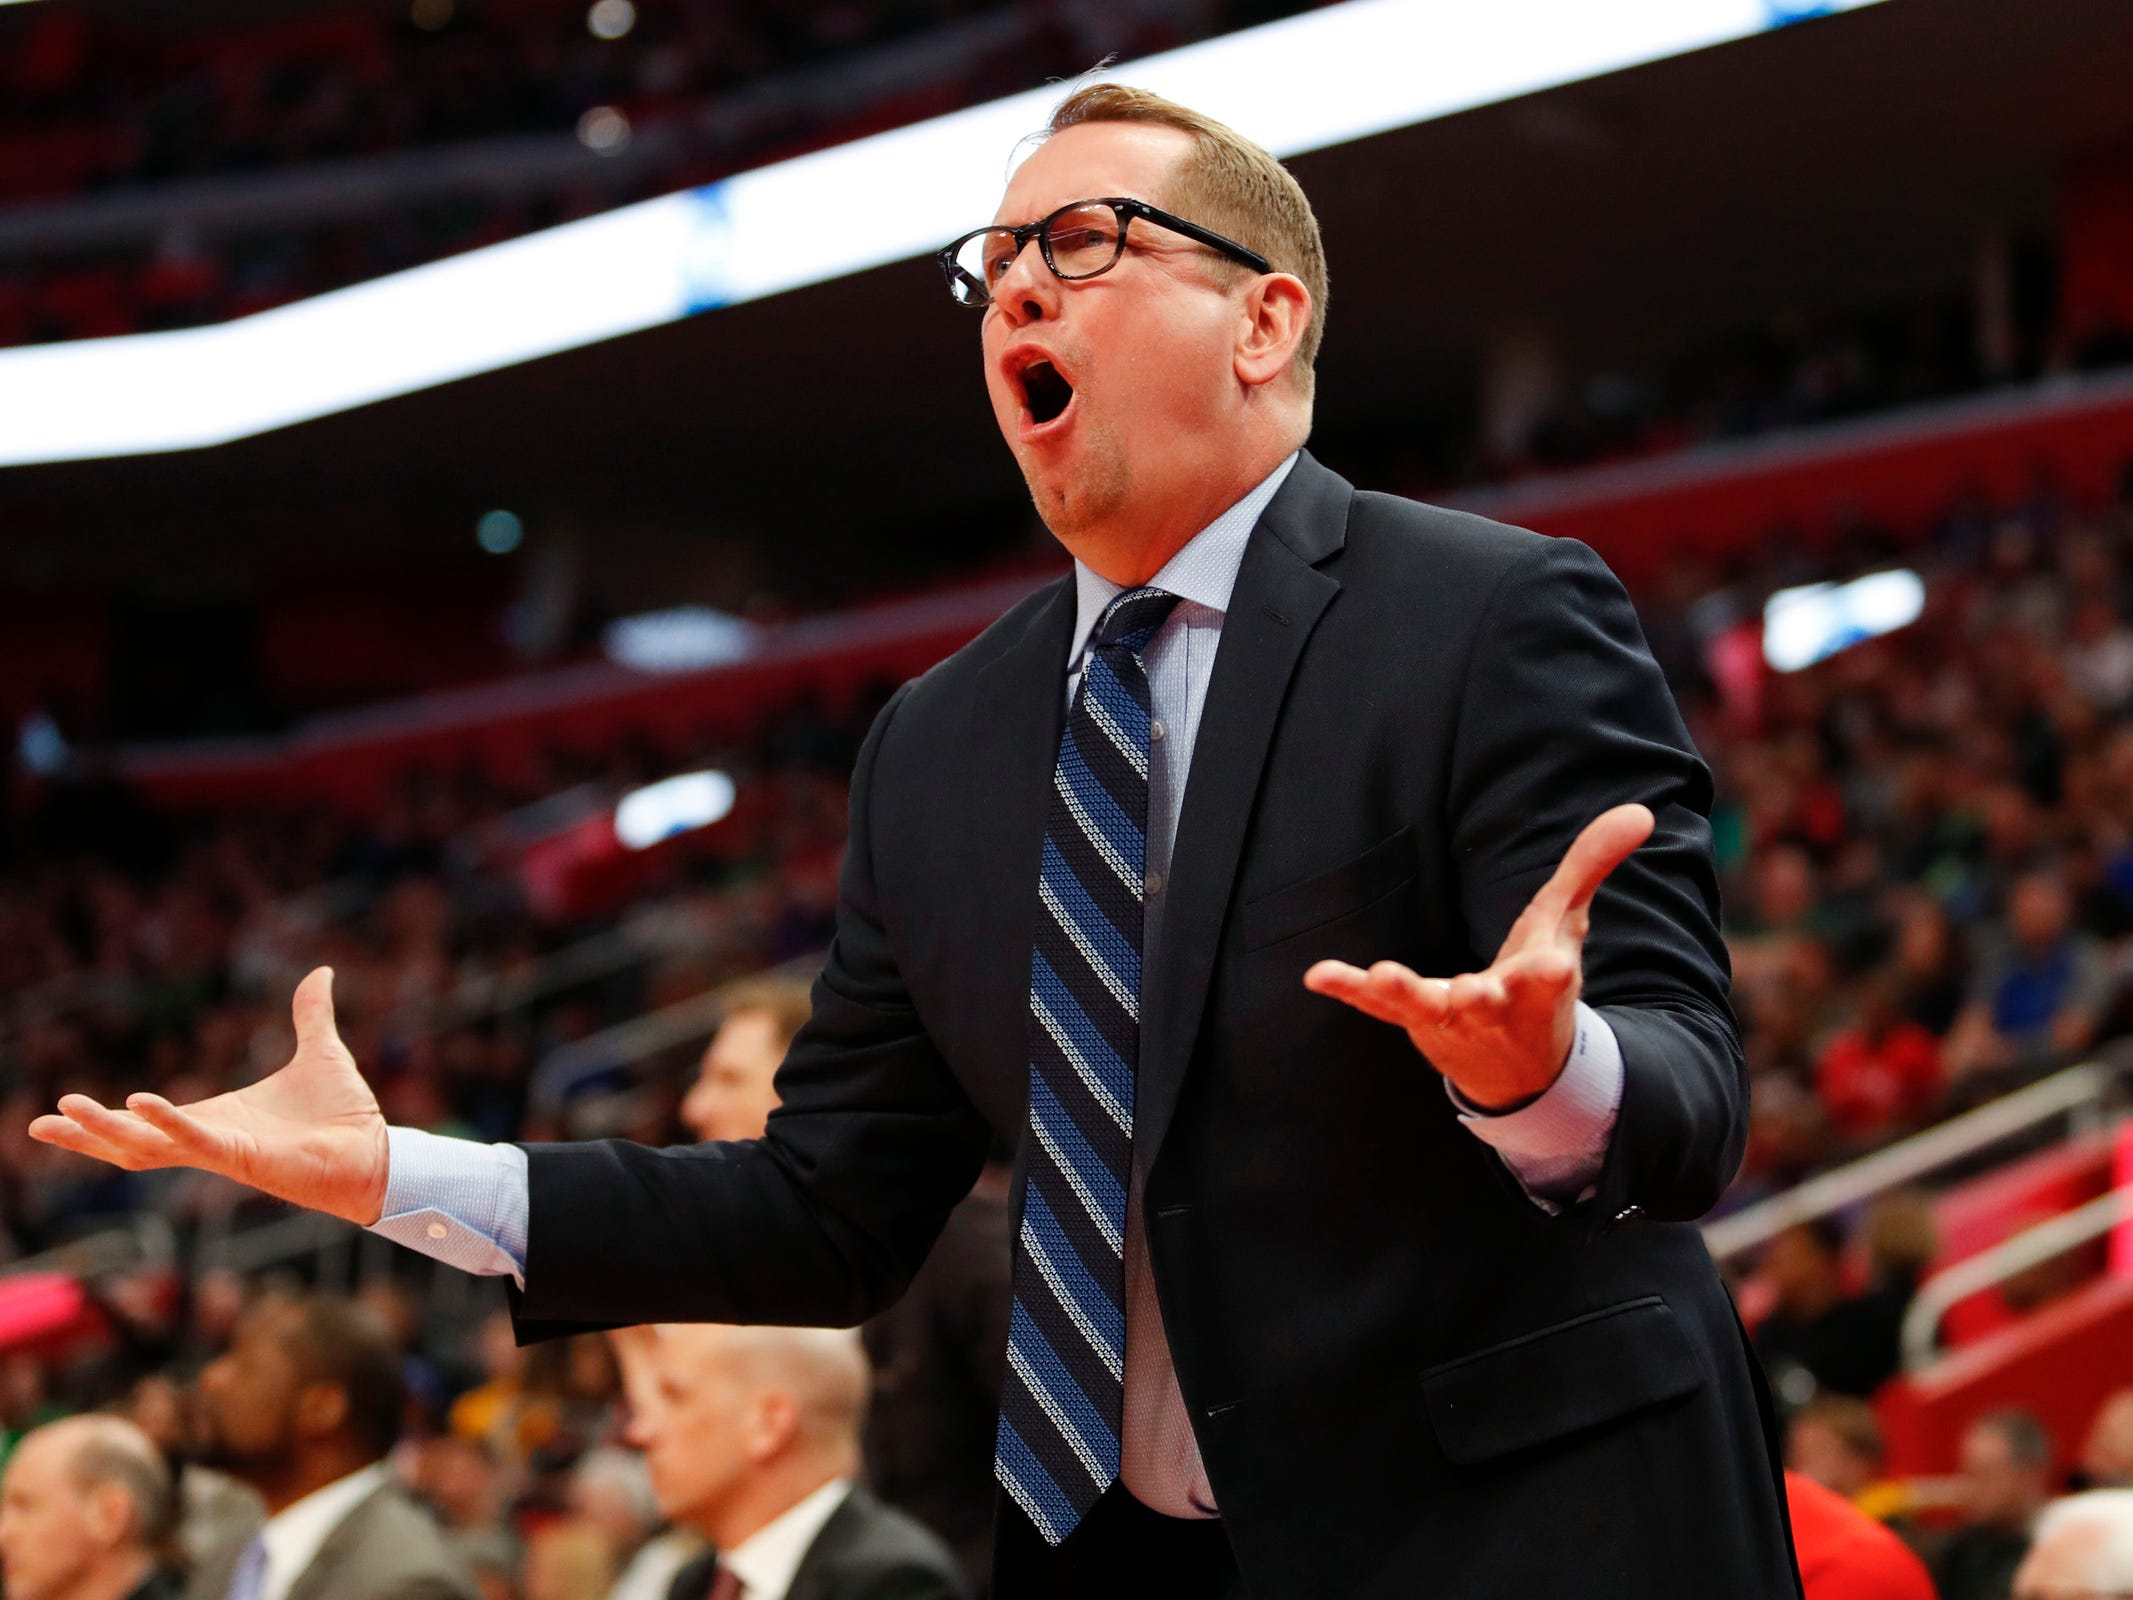 Toronto Raptors coach Nick Nurse yells at a referee during the first quarter against the Detroit Pistons at Little Caesars Arena, March 17, 2019, in Detroit.